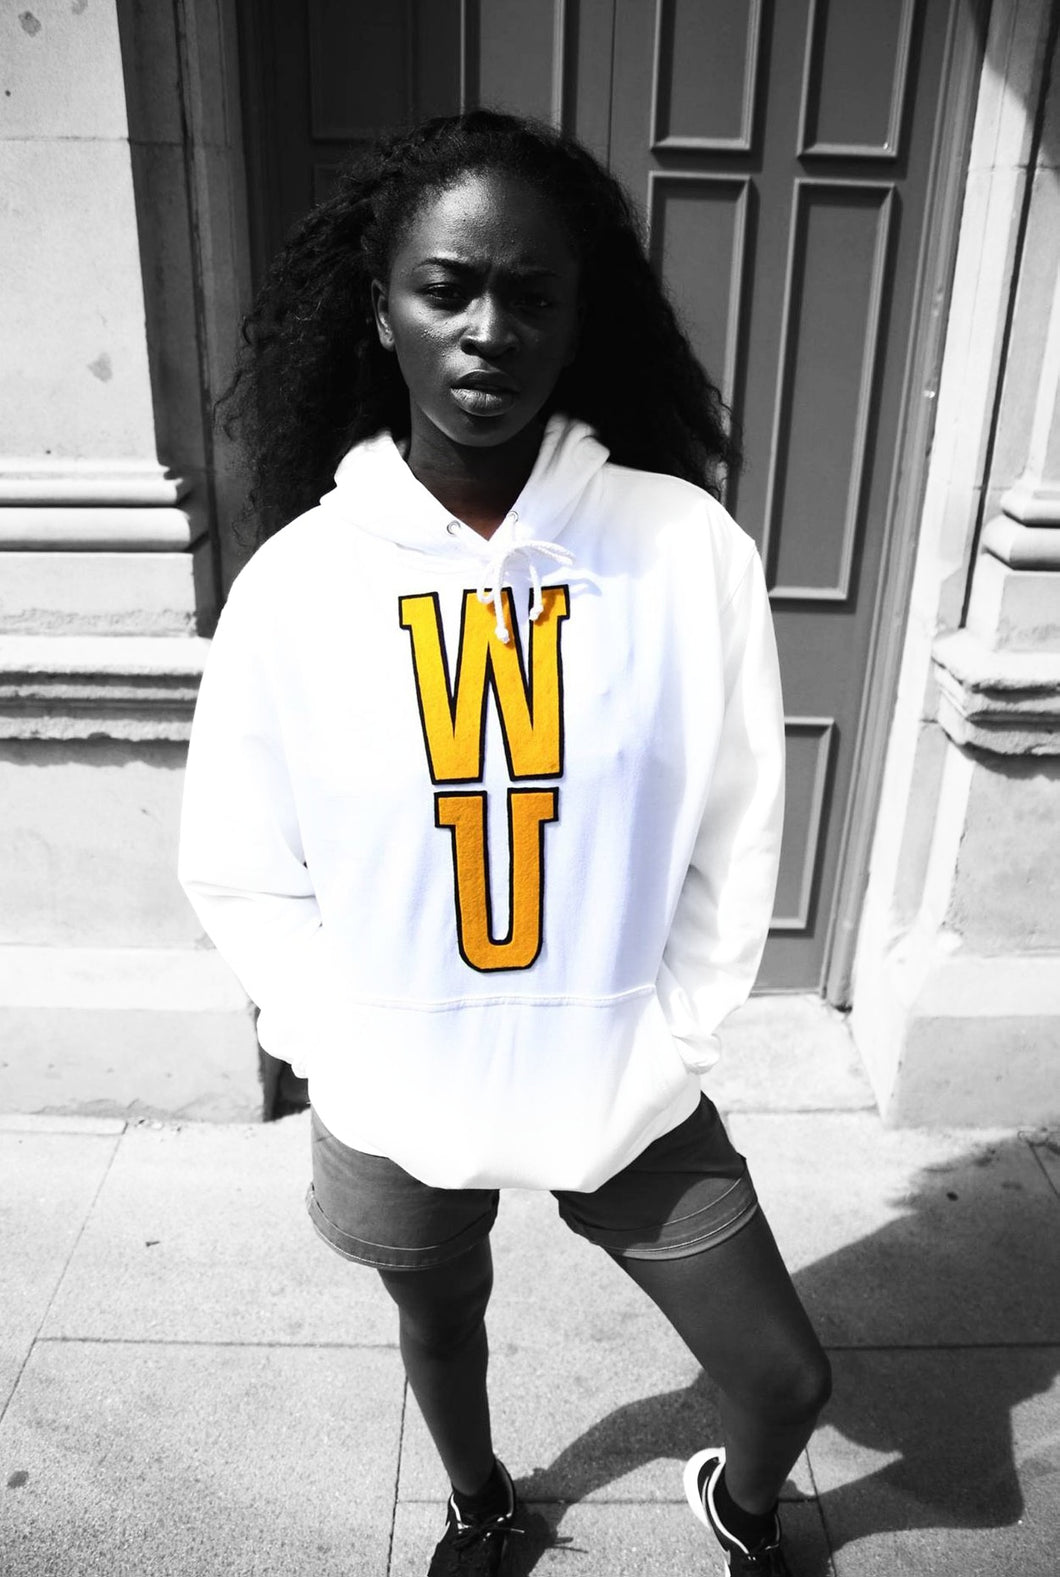 WU - White Cotton Hoodie - 3D graphics - The Drop